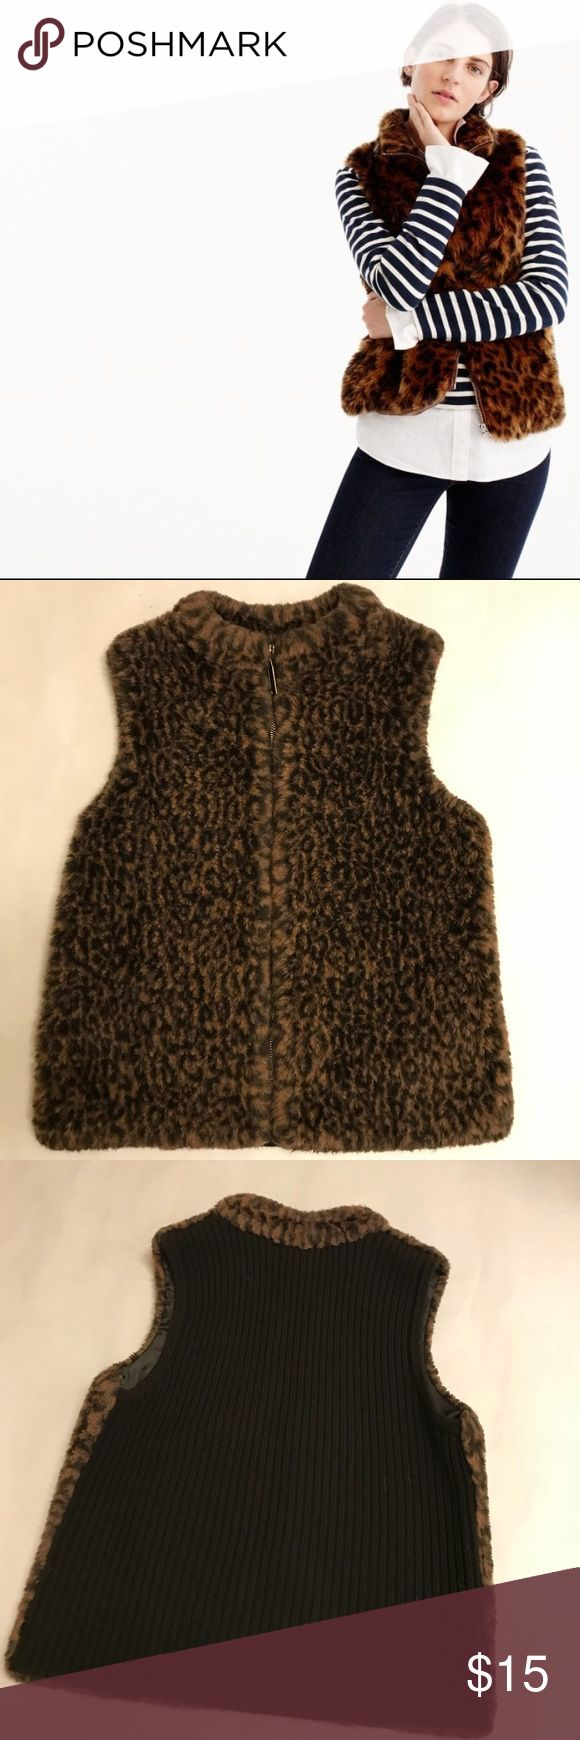 Leopard Faux Fur Zip Up Vest! ****First image IS NOT actual product just used for styling tip**** Cute faux fur animal Print vest with sweater back. Zips. In EUC! No flaws that I can find I only wore it a handful of times. Size S. From a clean and smoke free home! Jackets & Coats Vests